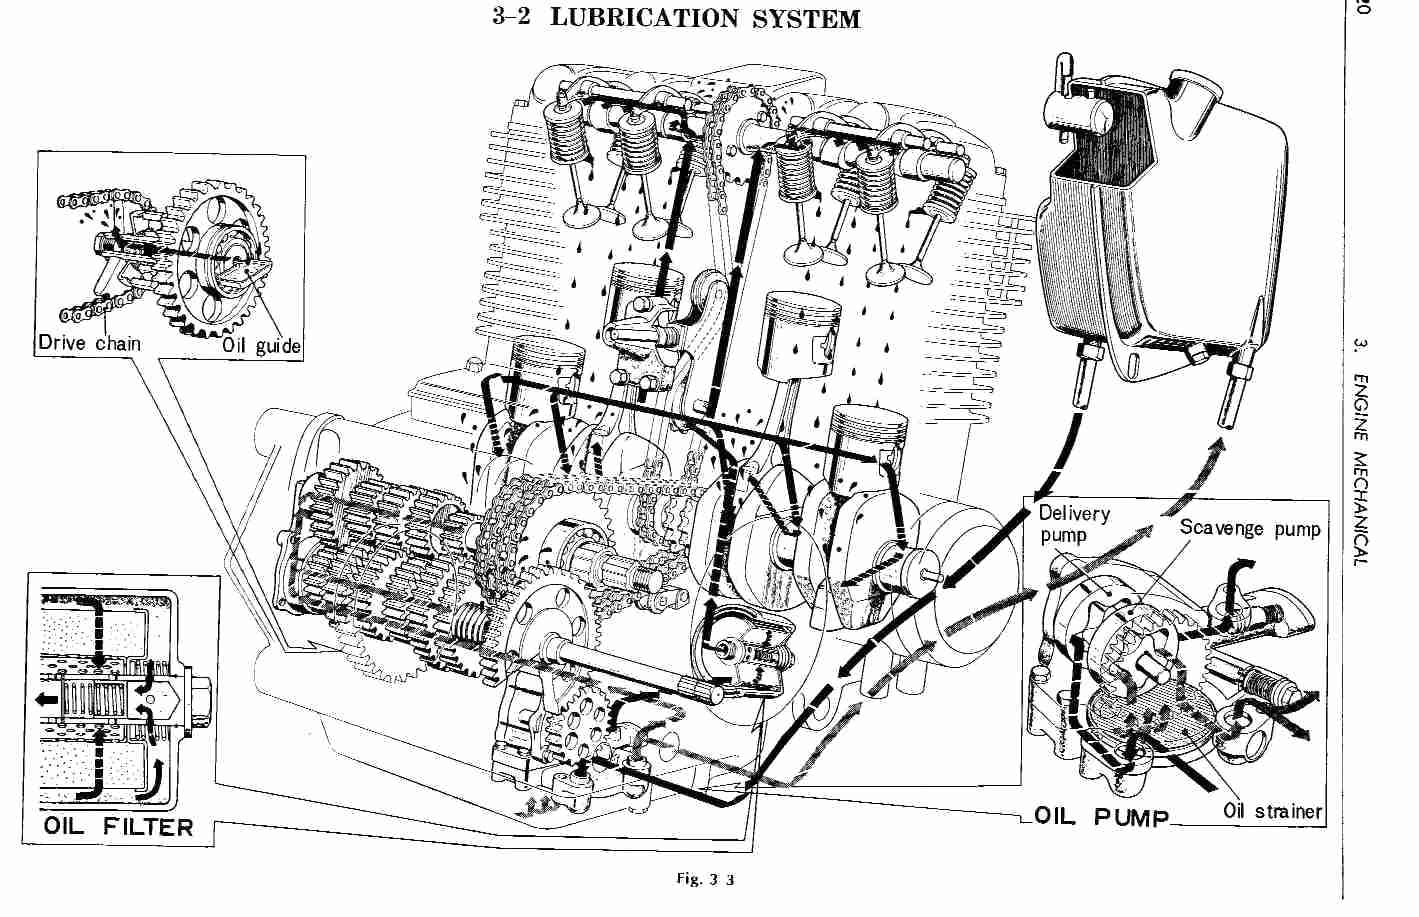 Cb 750 wiring diagram awesome wiring diagram image